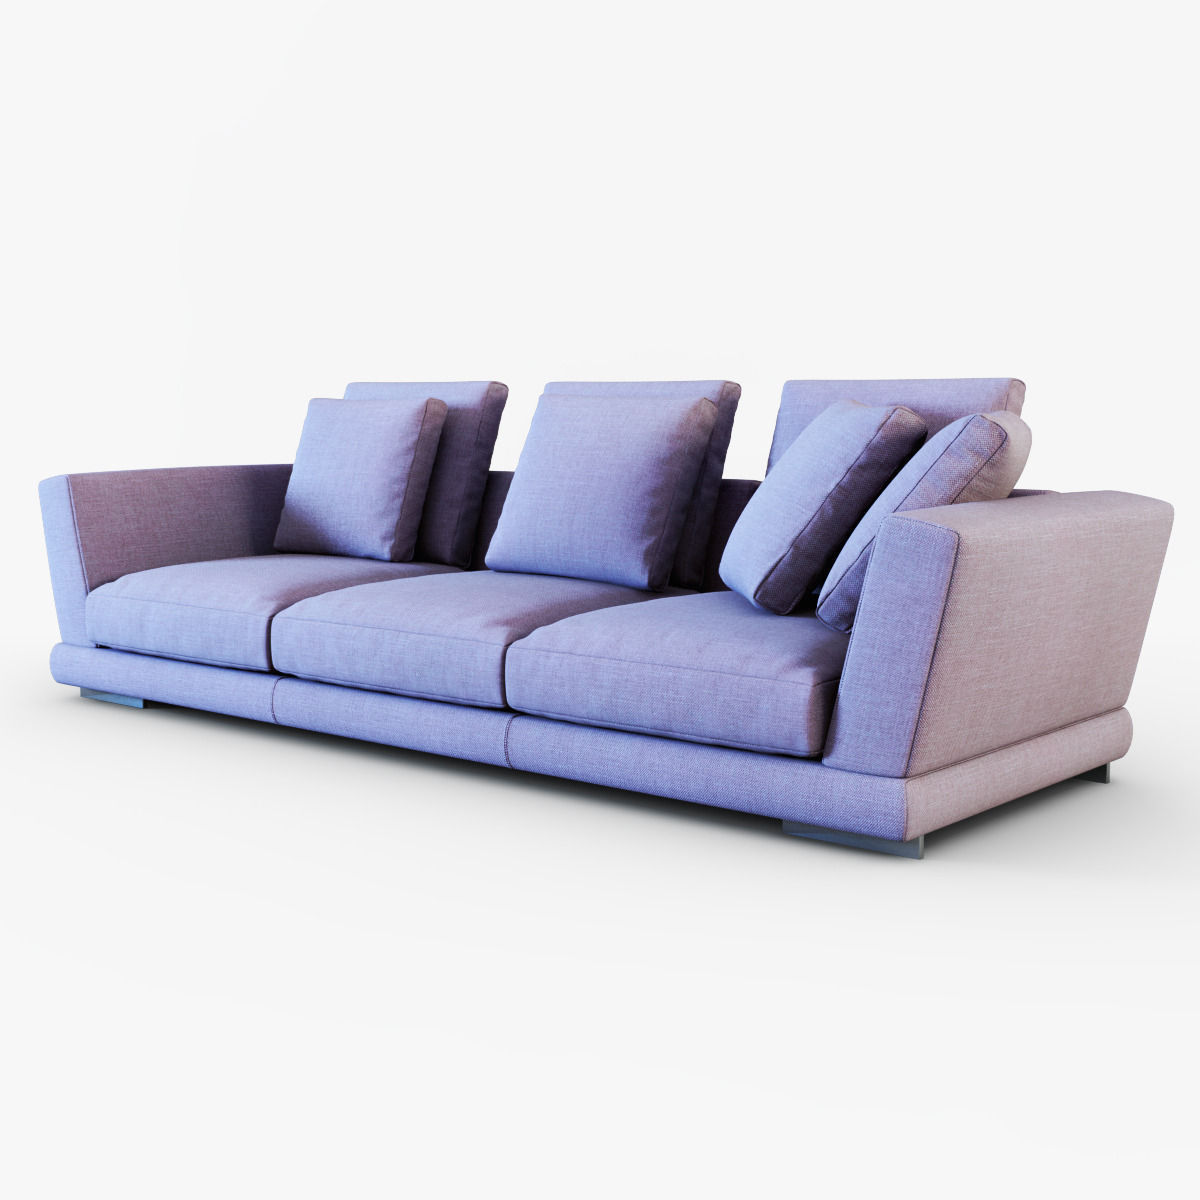 Contemporary Couch Contemporary Sofa James By David Casadesus 3d Model